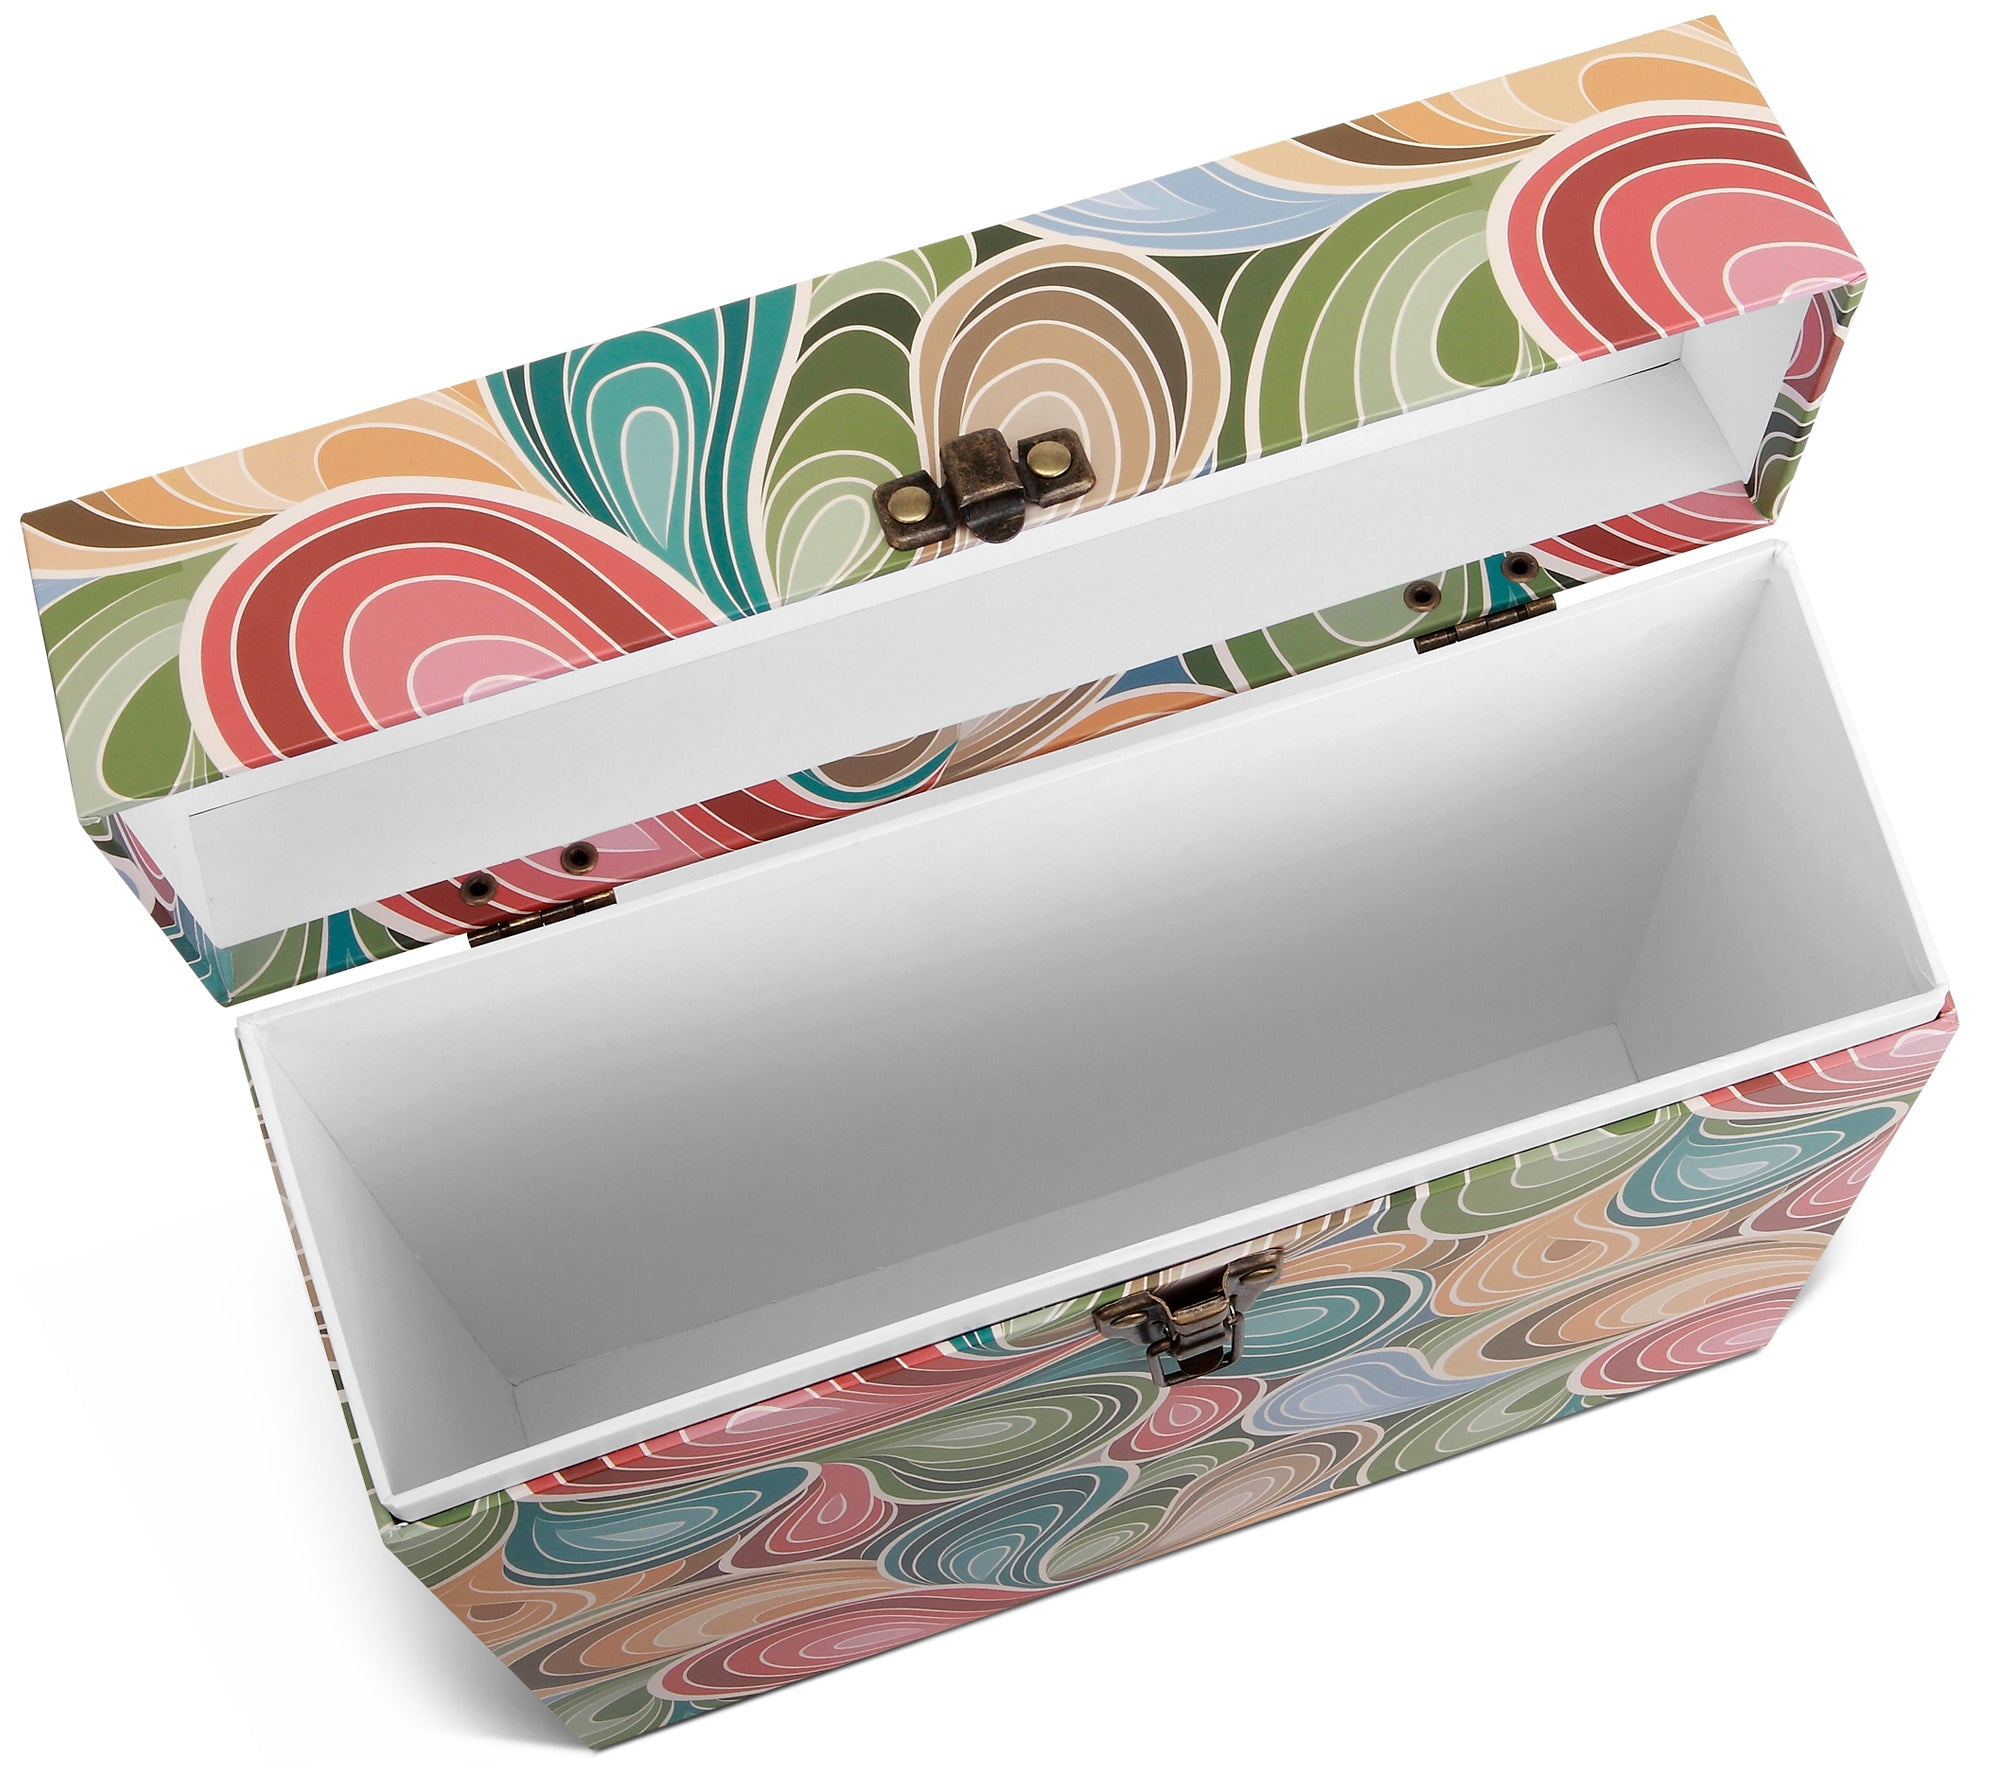 Paisley Parts Lp Vinyl Record Storage Box And Carrying